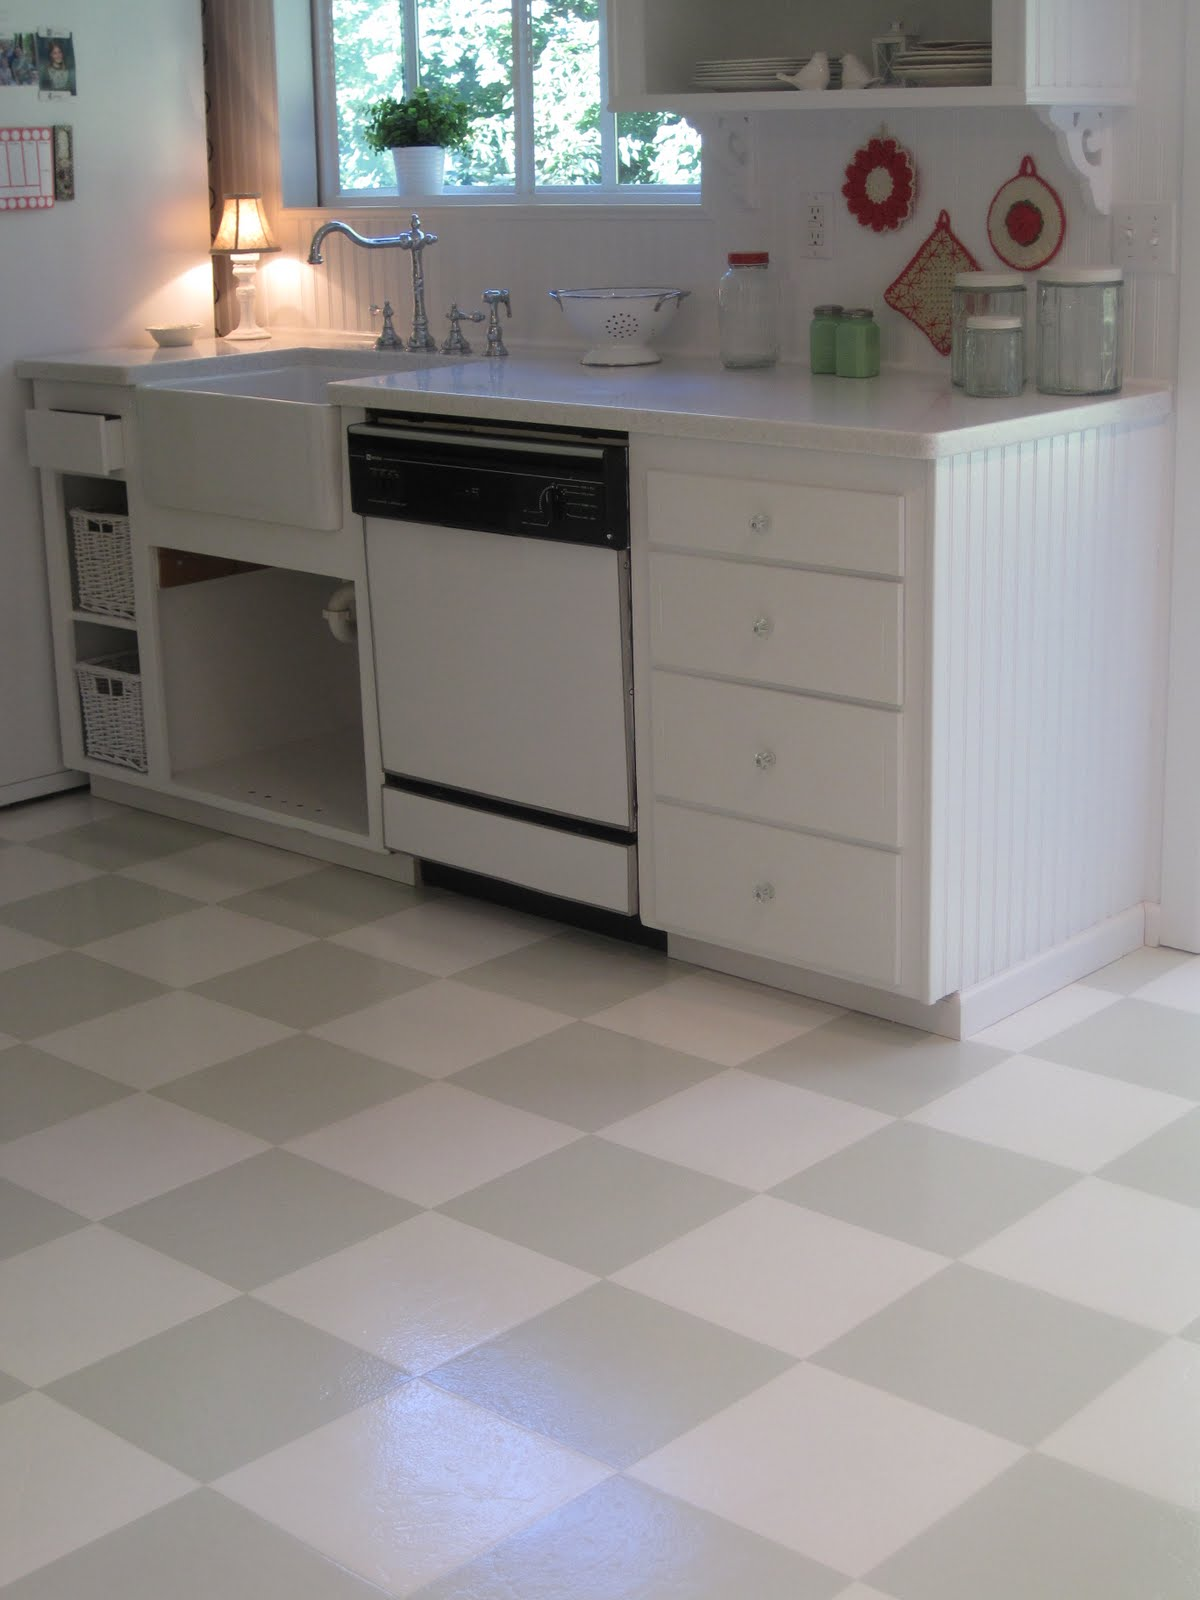 vinyl kitchen flooring portable islands with seating nest to keep floor reveal